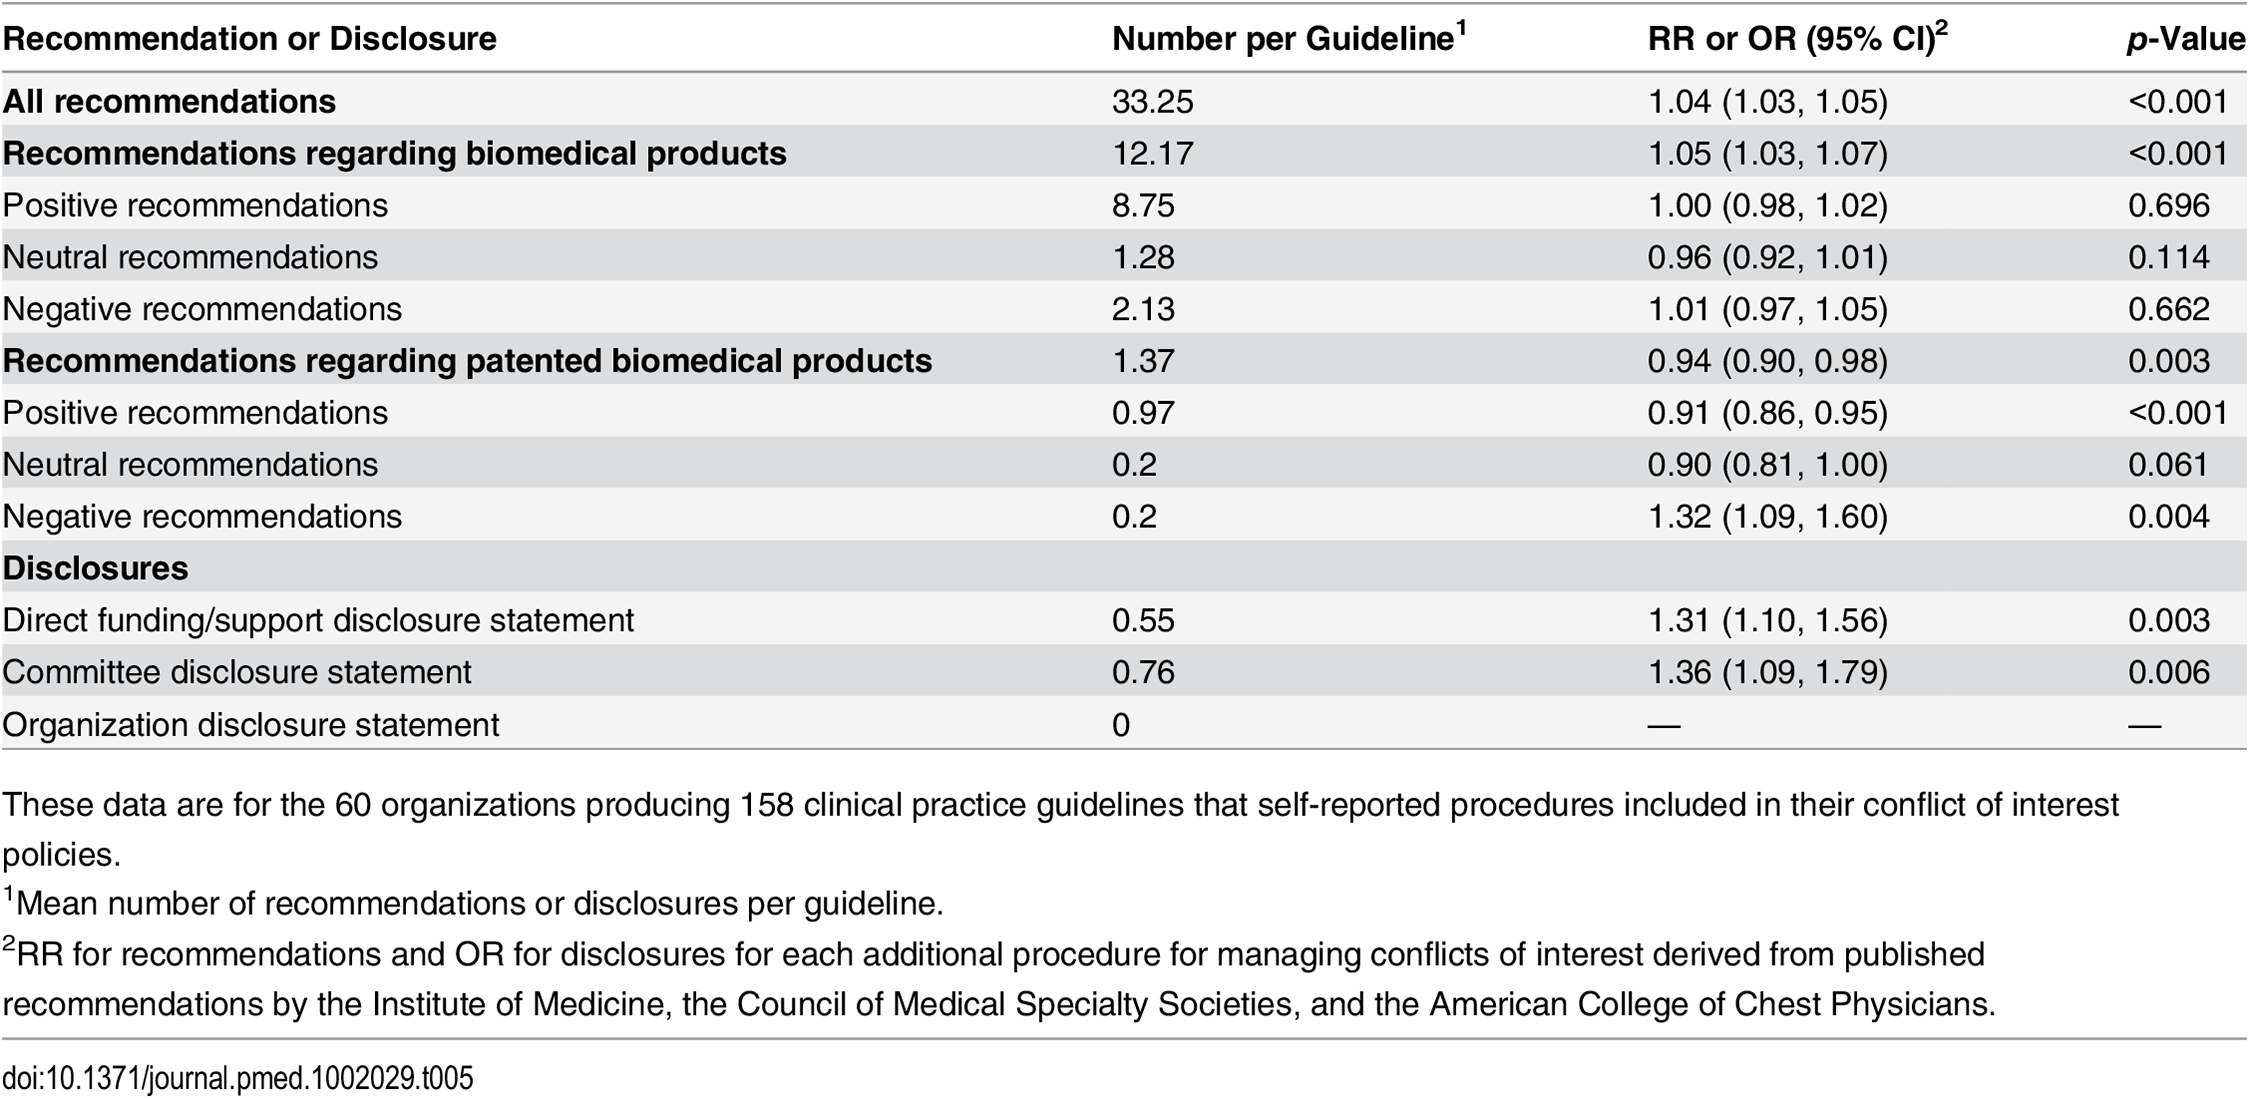 Clinical practice guideline recommendations and disclosures according to the number of procedures in an organization's conflict of interest policy.